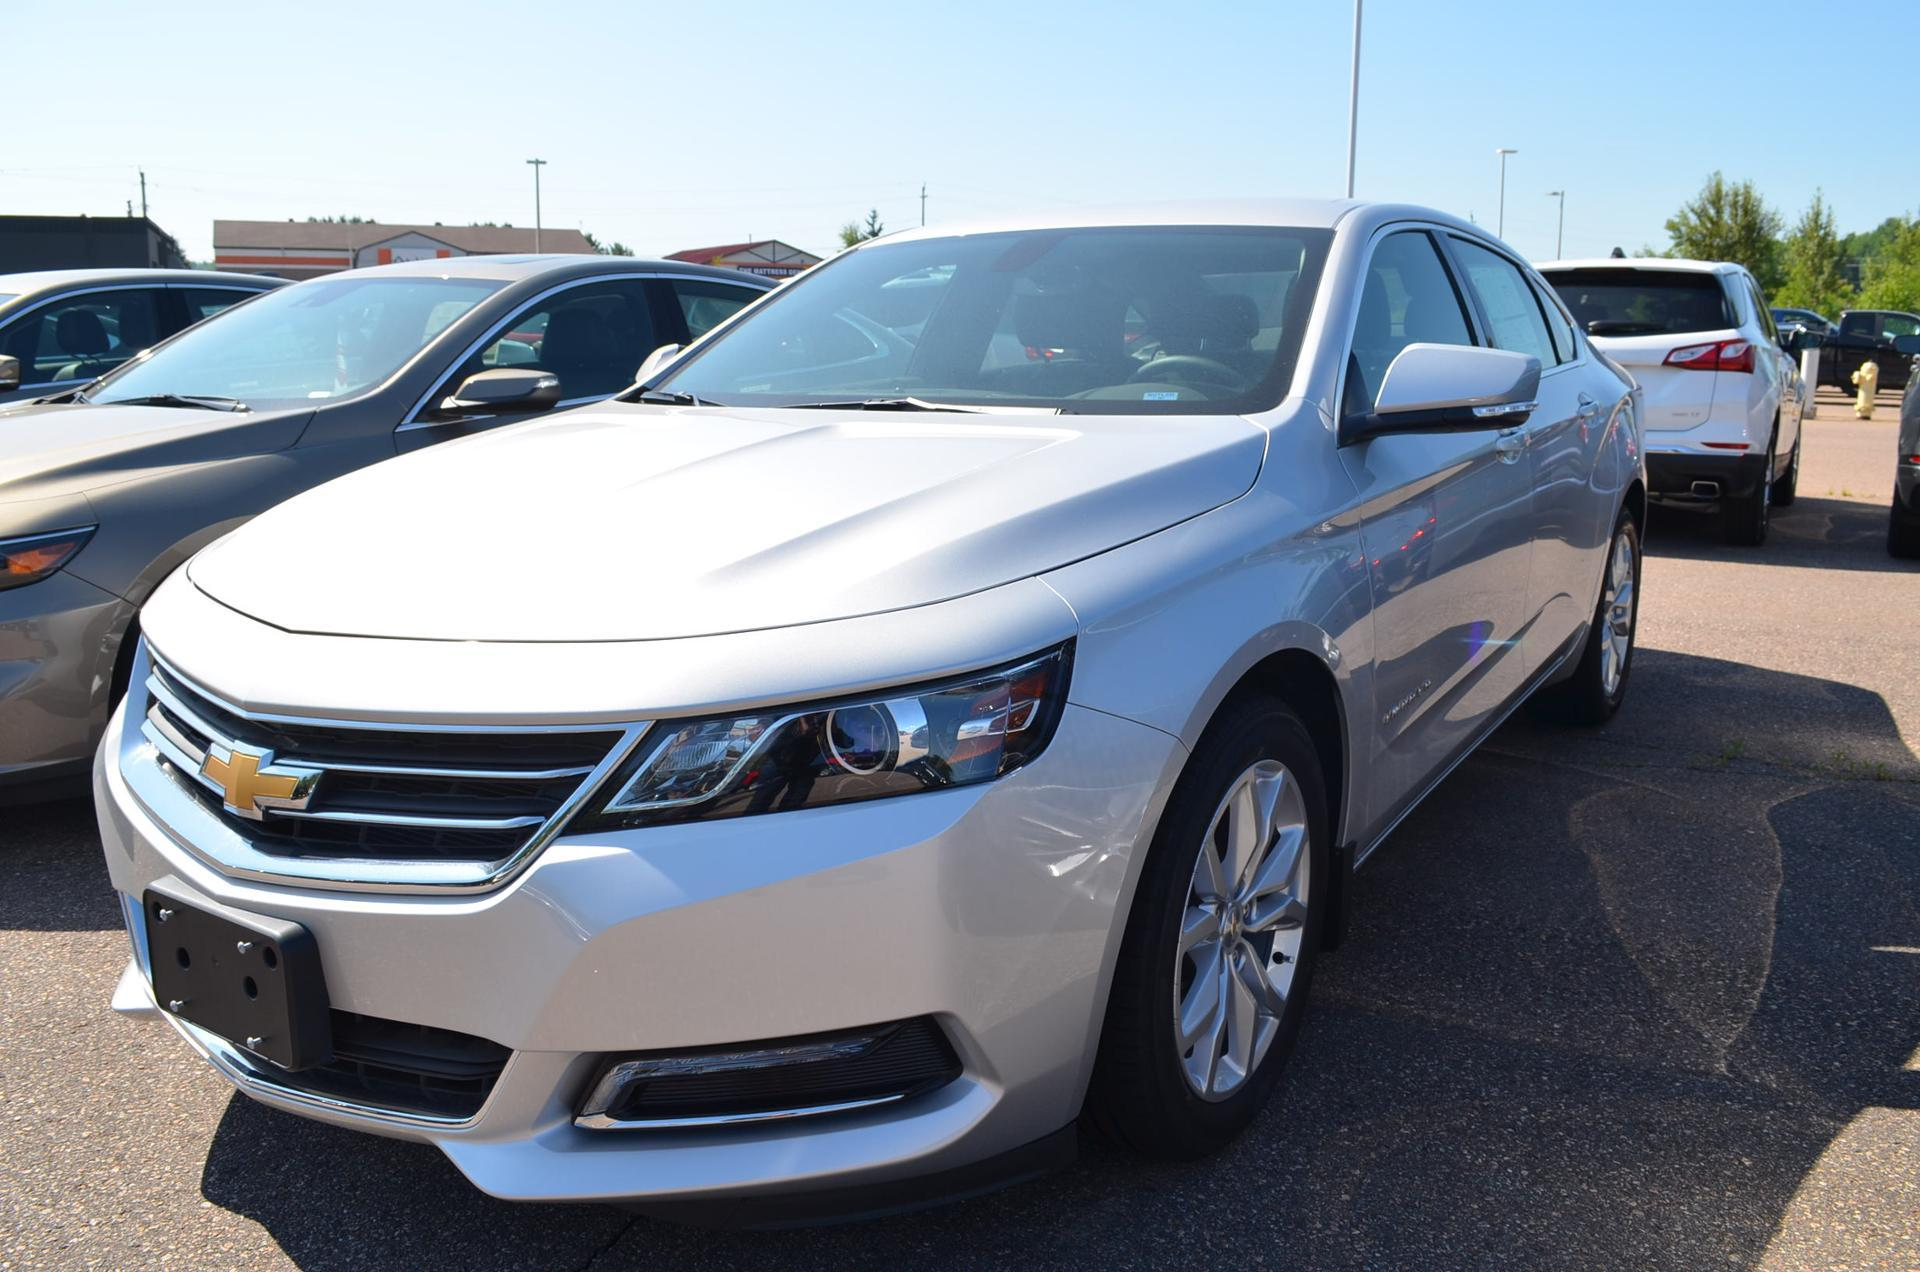 2018 White Chevrolet Impala Cars Made In Canada